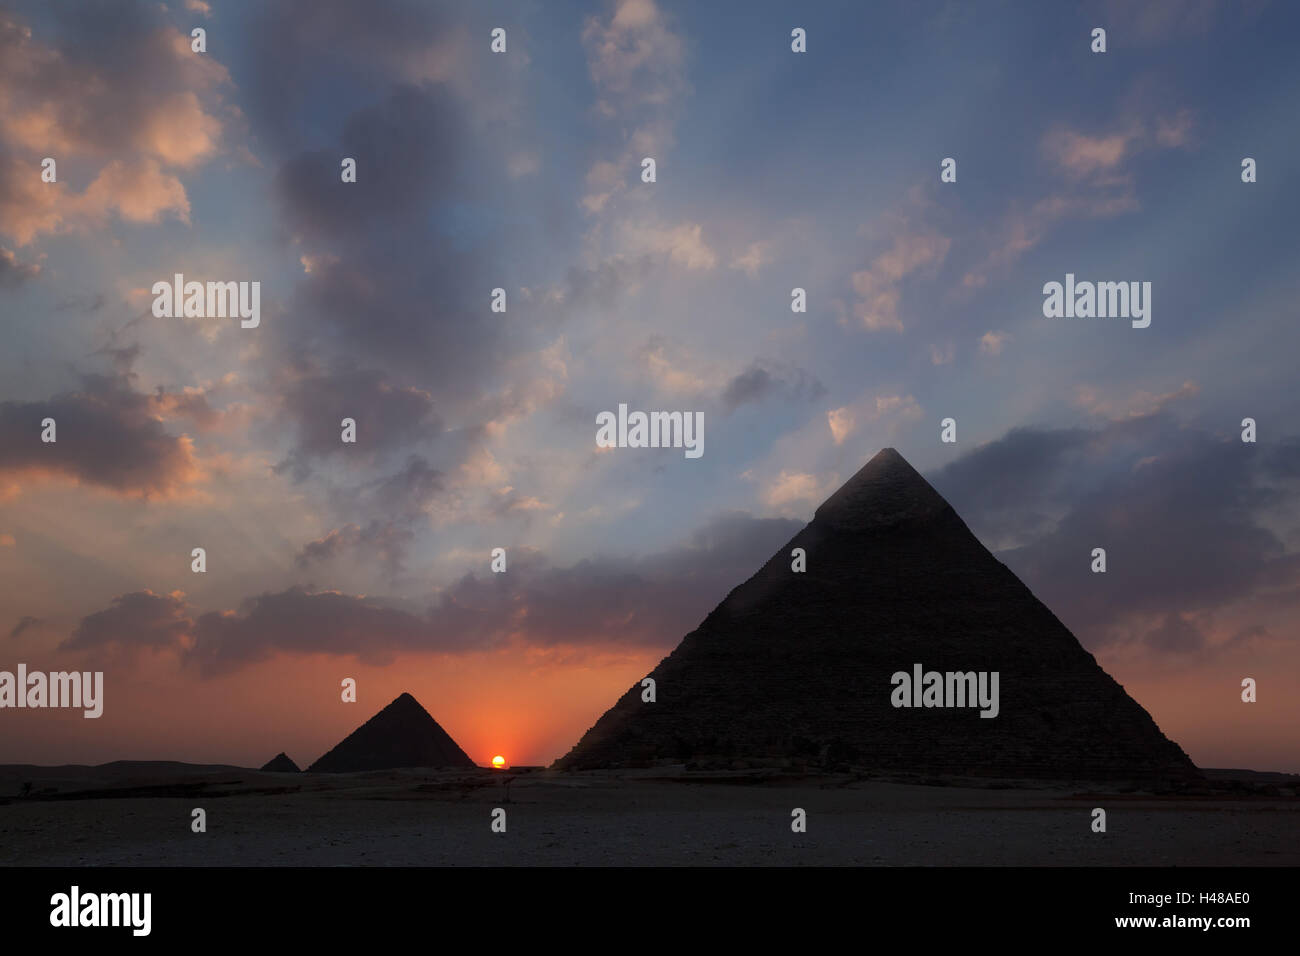 Egypt, Cairo, pyramids of Giza, sunset, - Stock Image